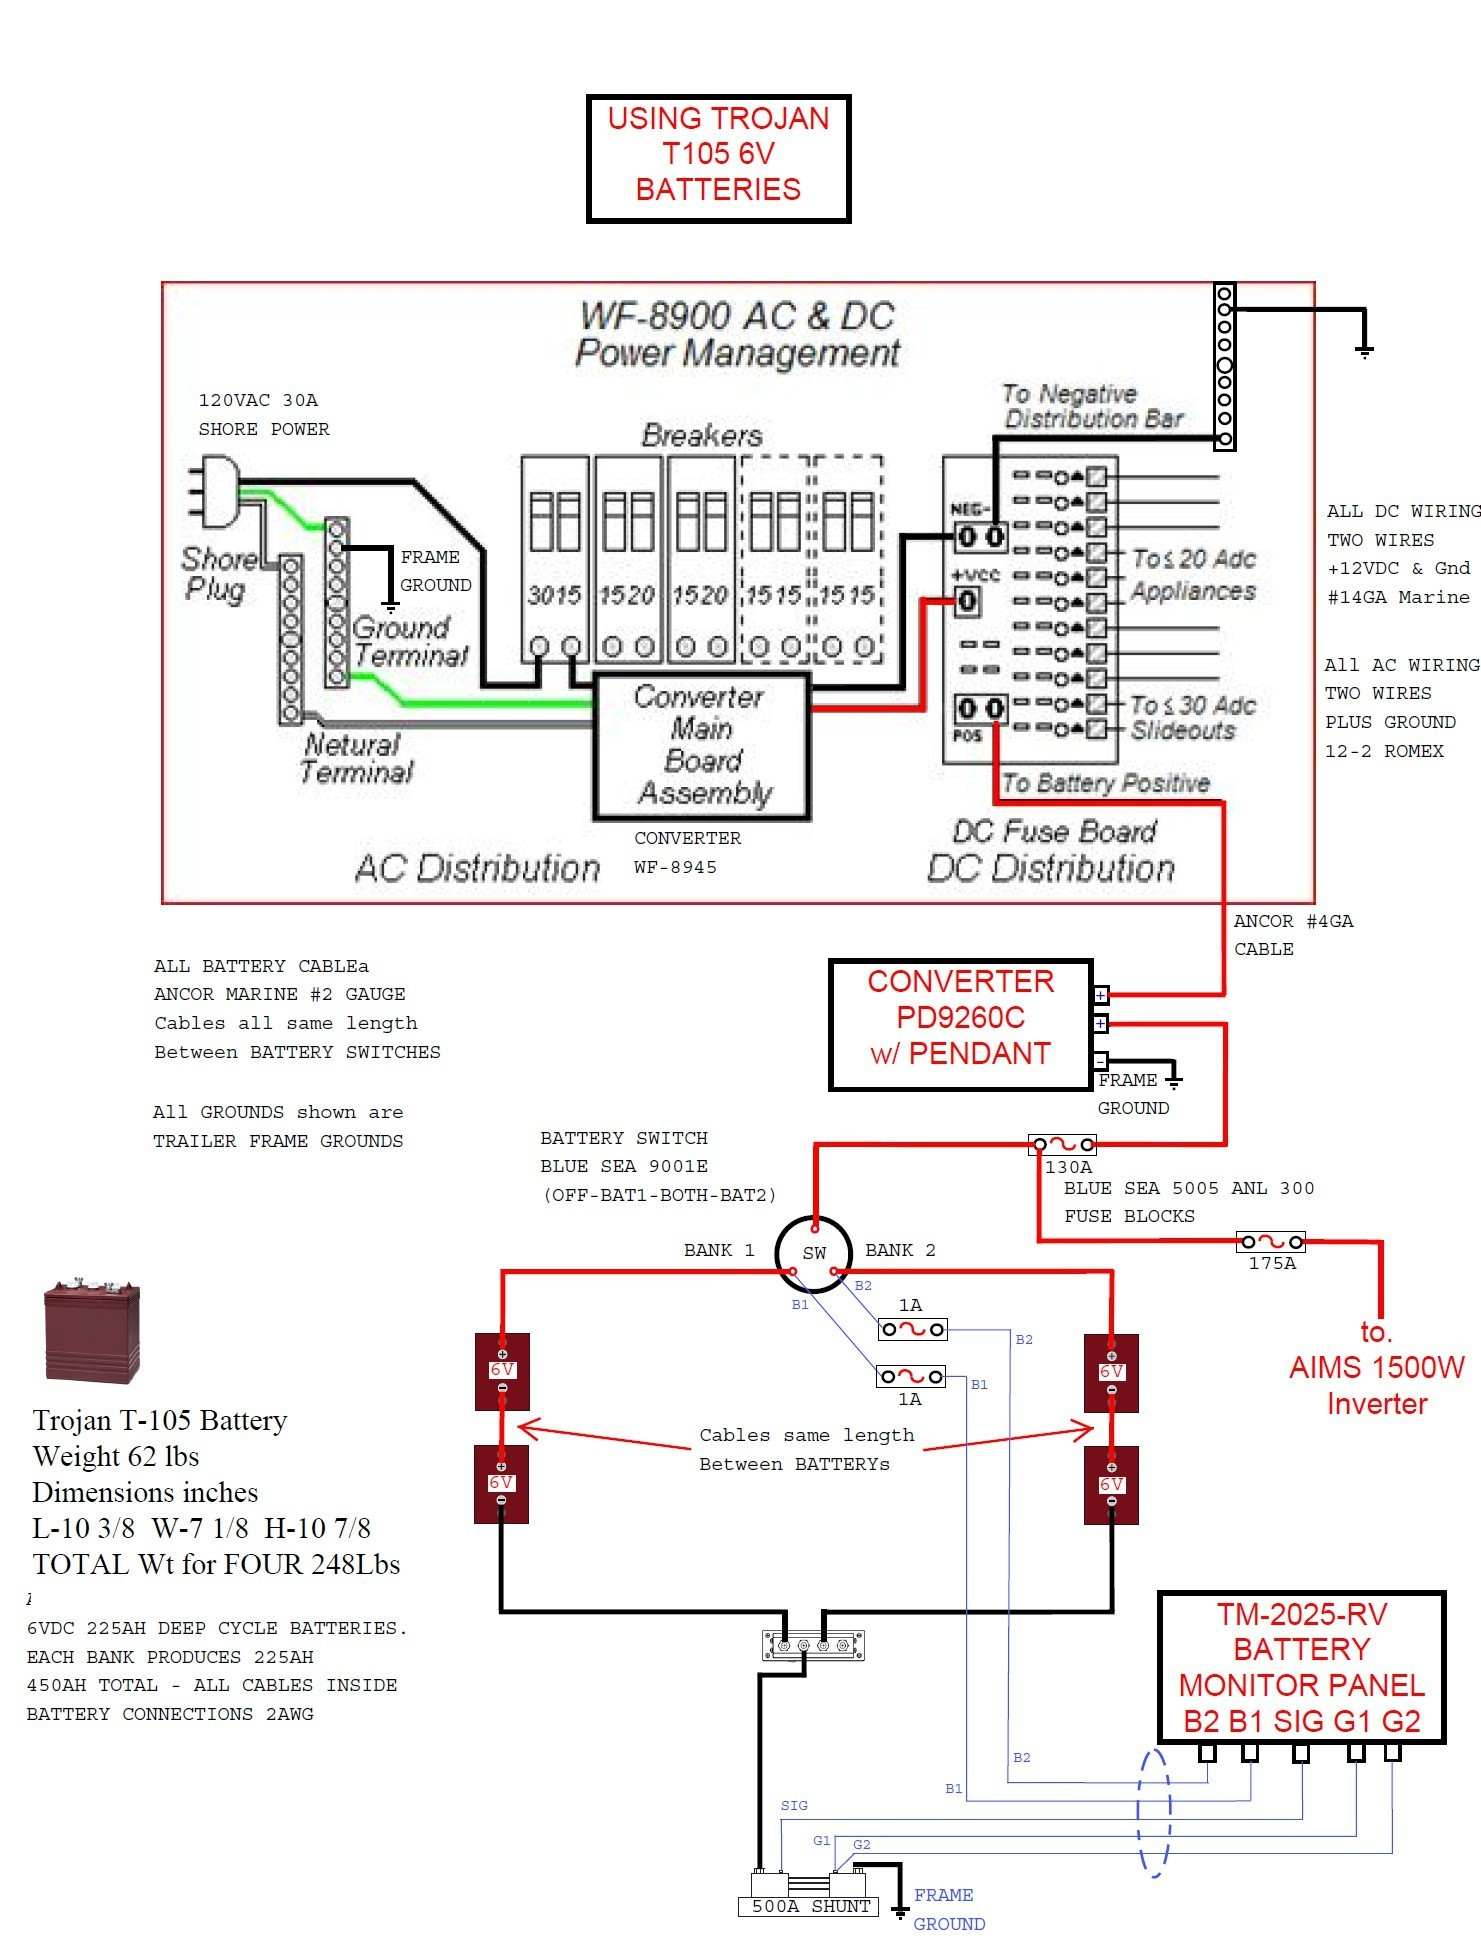 Rv Battery Disconnect Switch Wiring Diagram Best Perfect Rv Battery Disconnect Switch Wiring Diagram 84